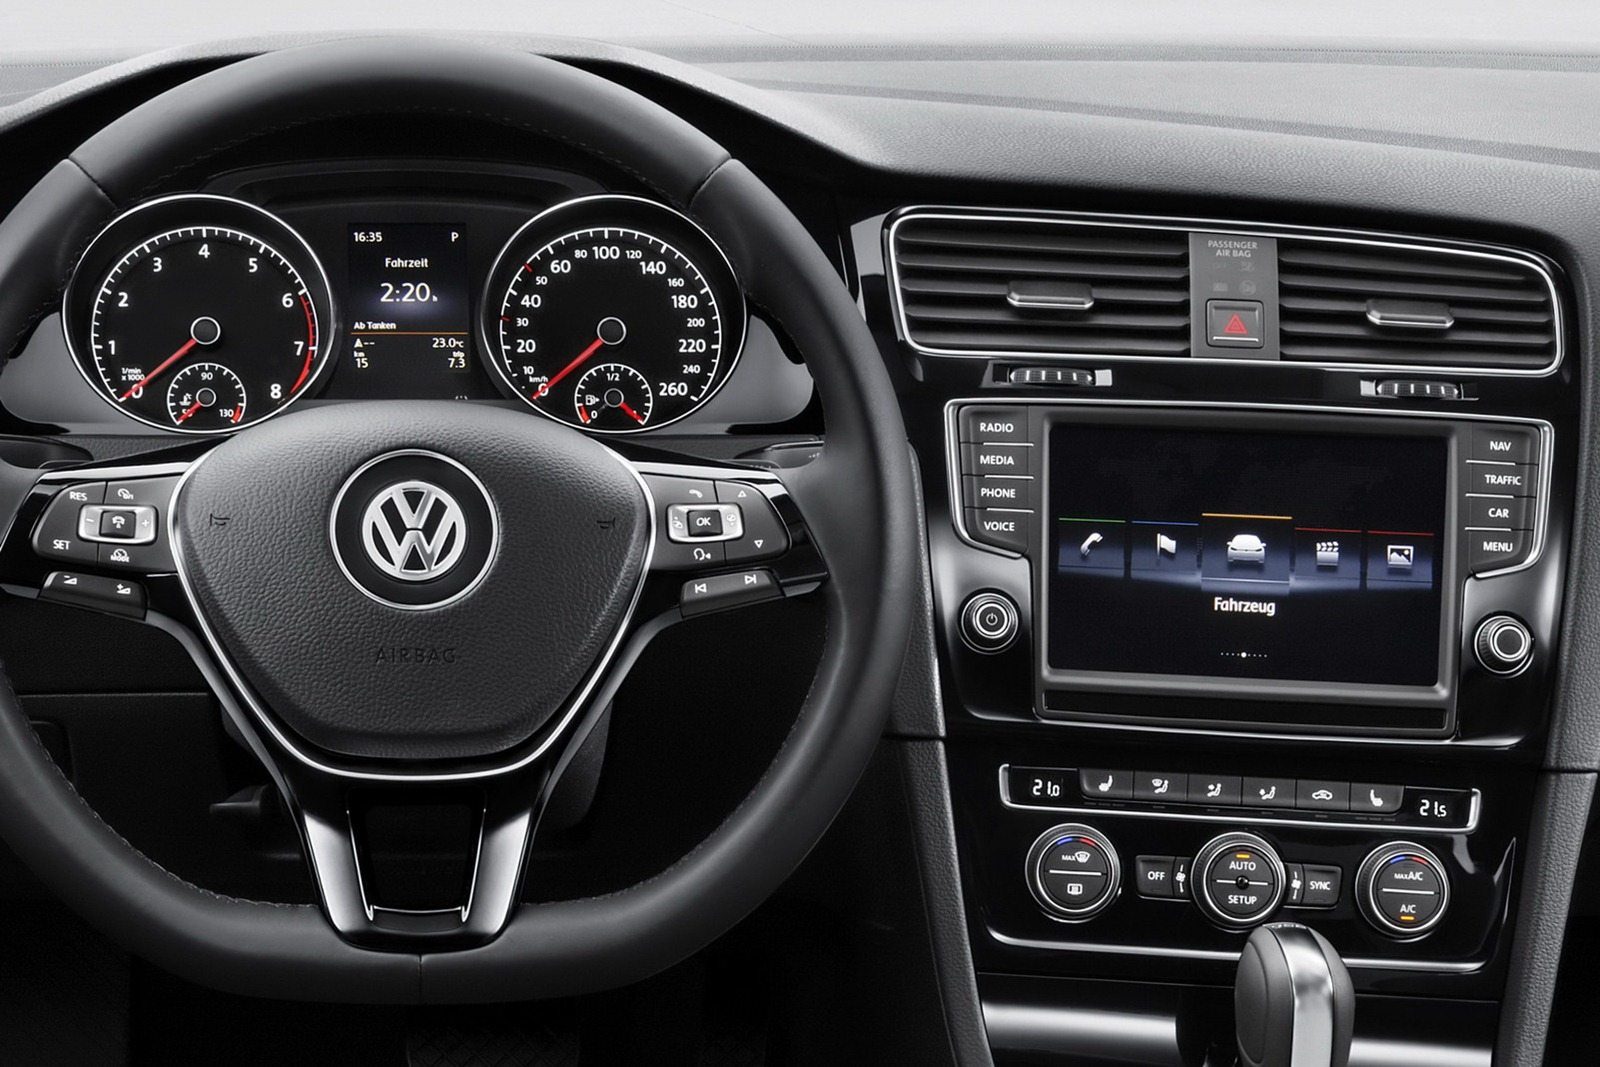 Volkswagen golf 7 nuove foto ufficiali 16 39 for Interieur golf 4 2000